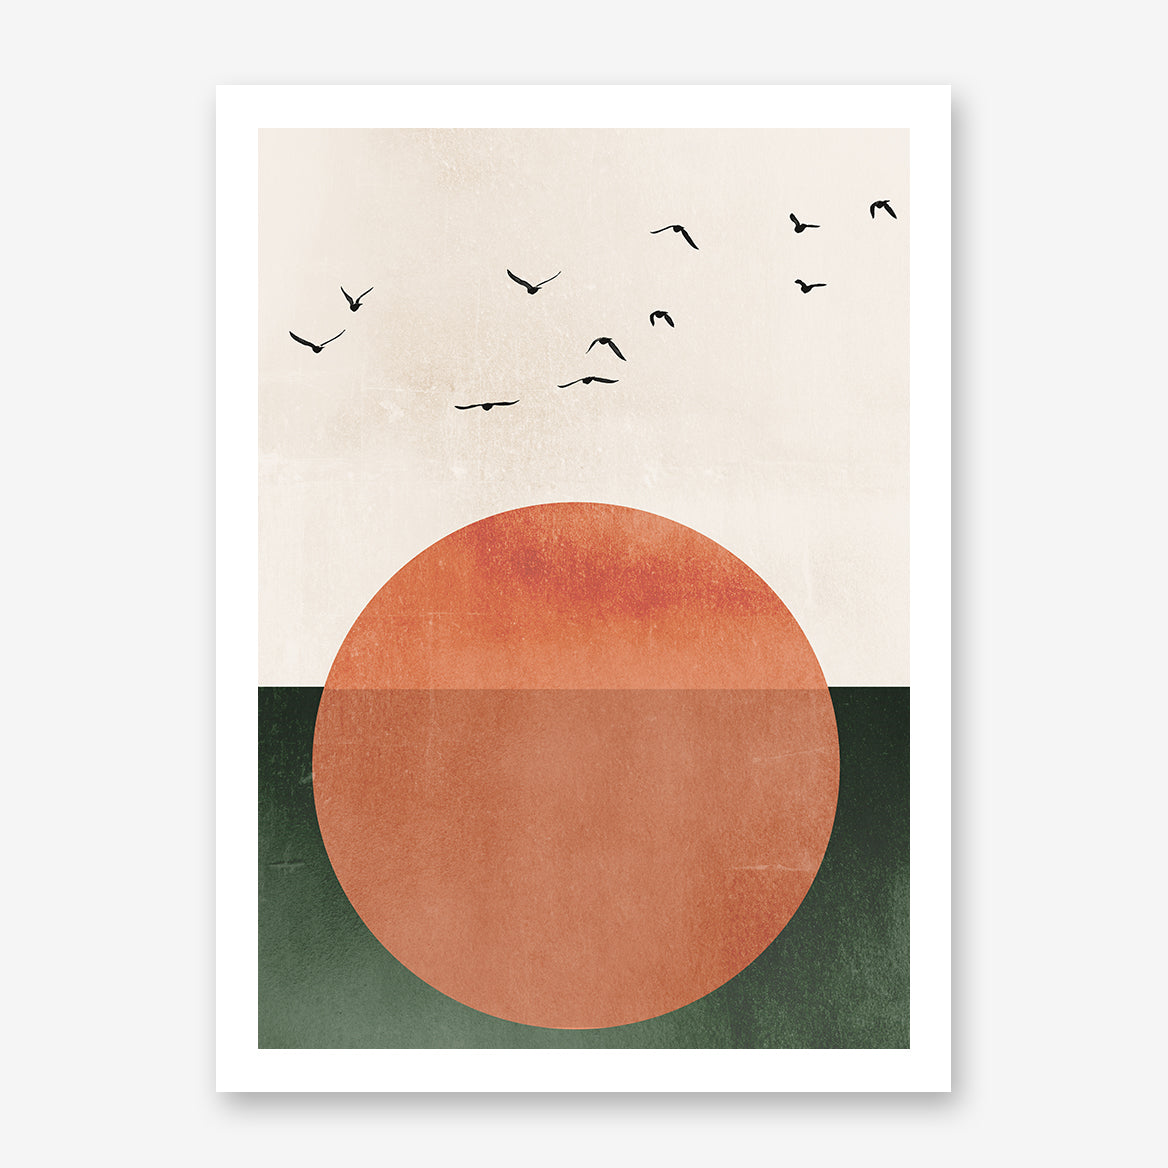 Poster print by Kubistika, with orange sun and black birds, on green and beige background.